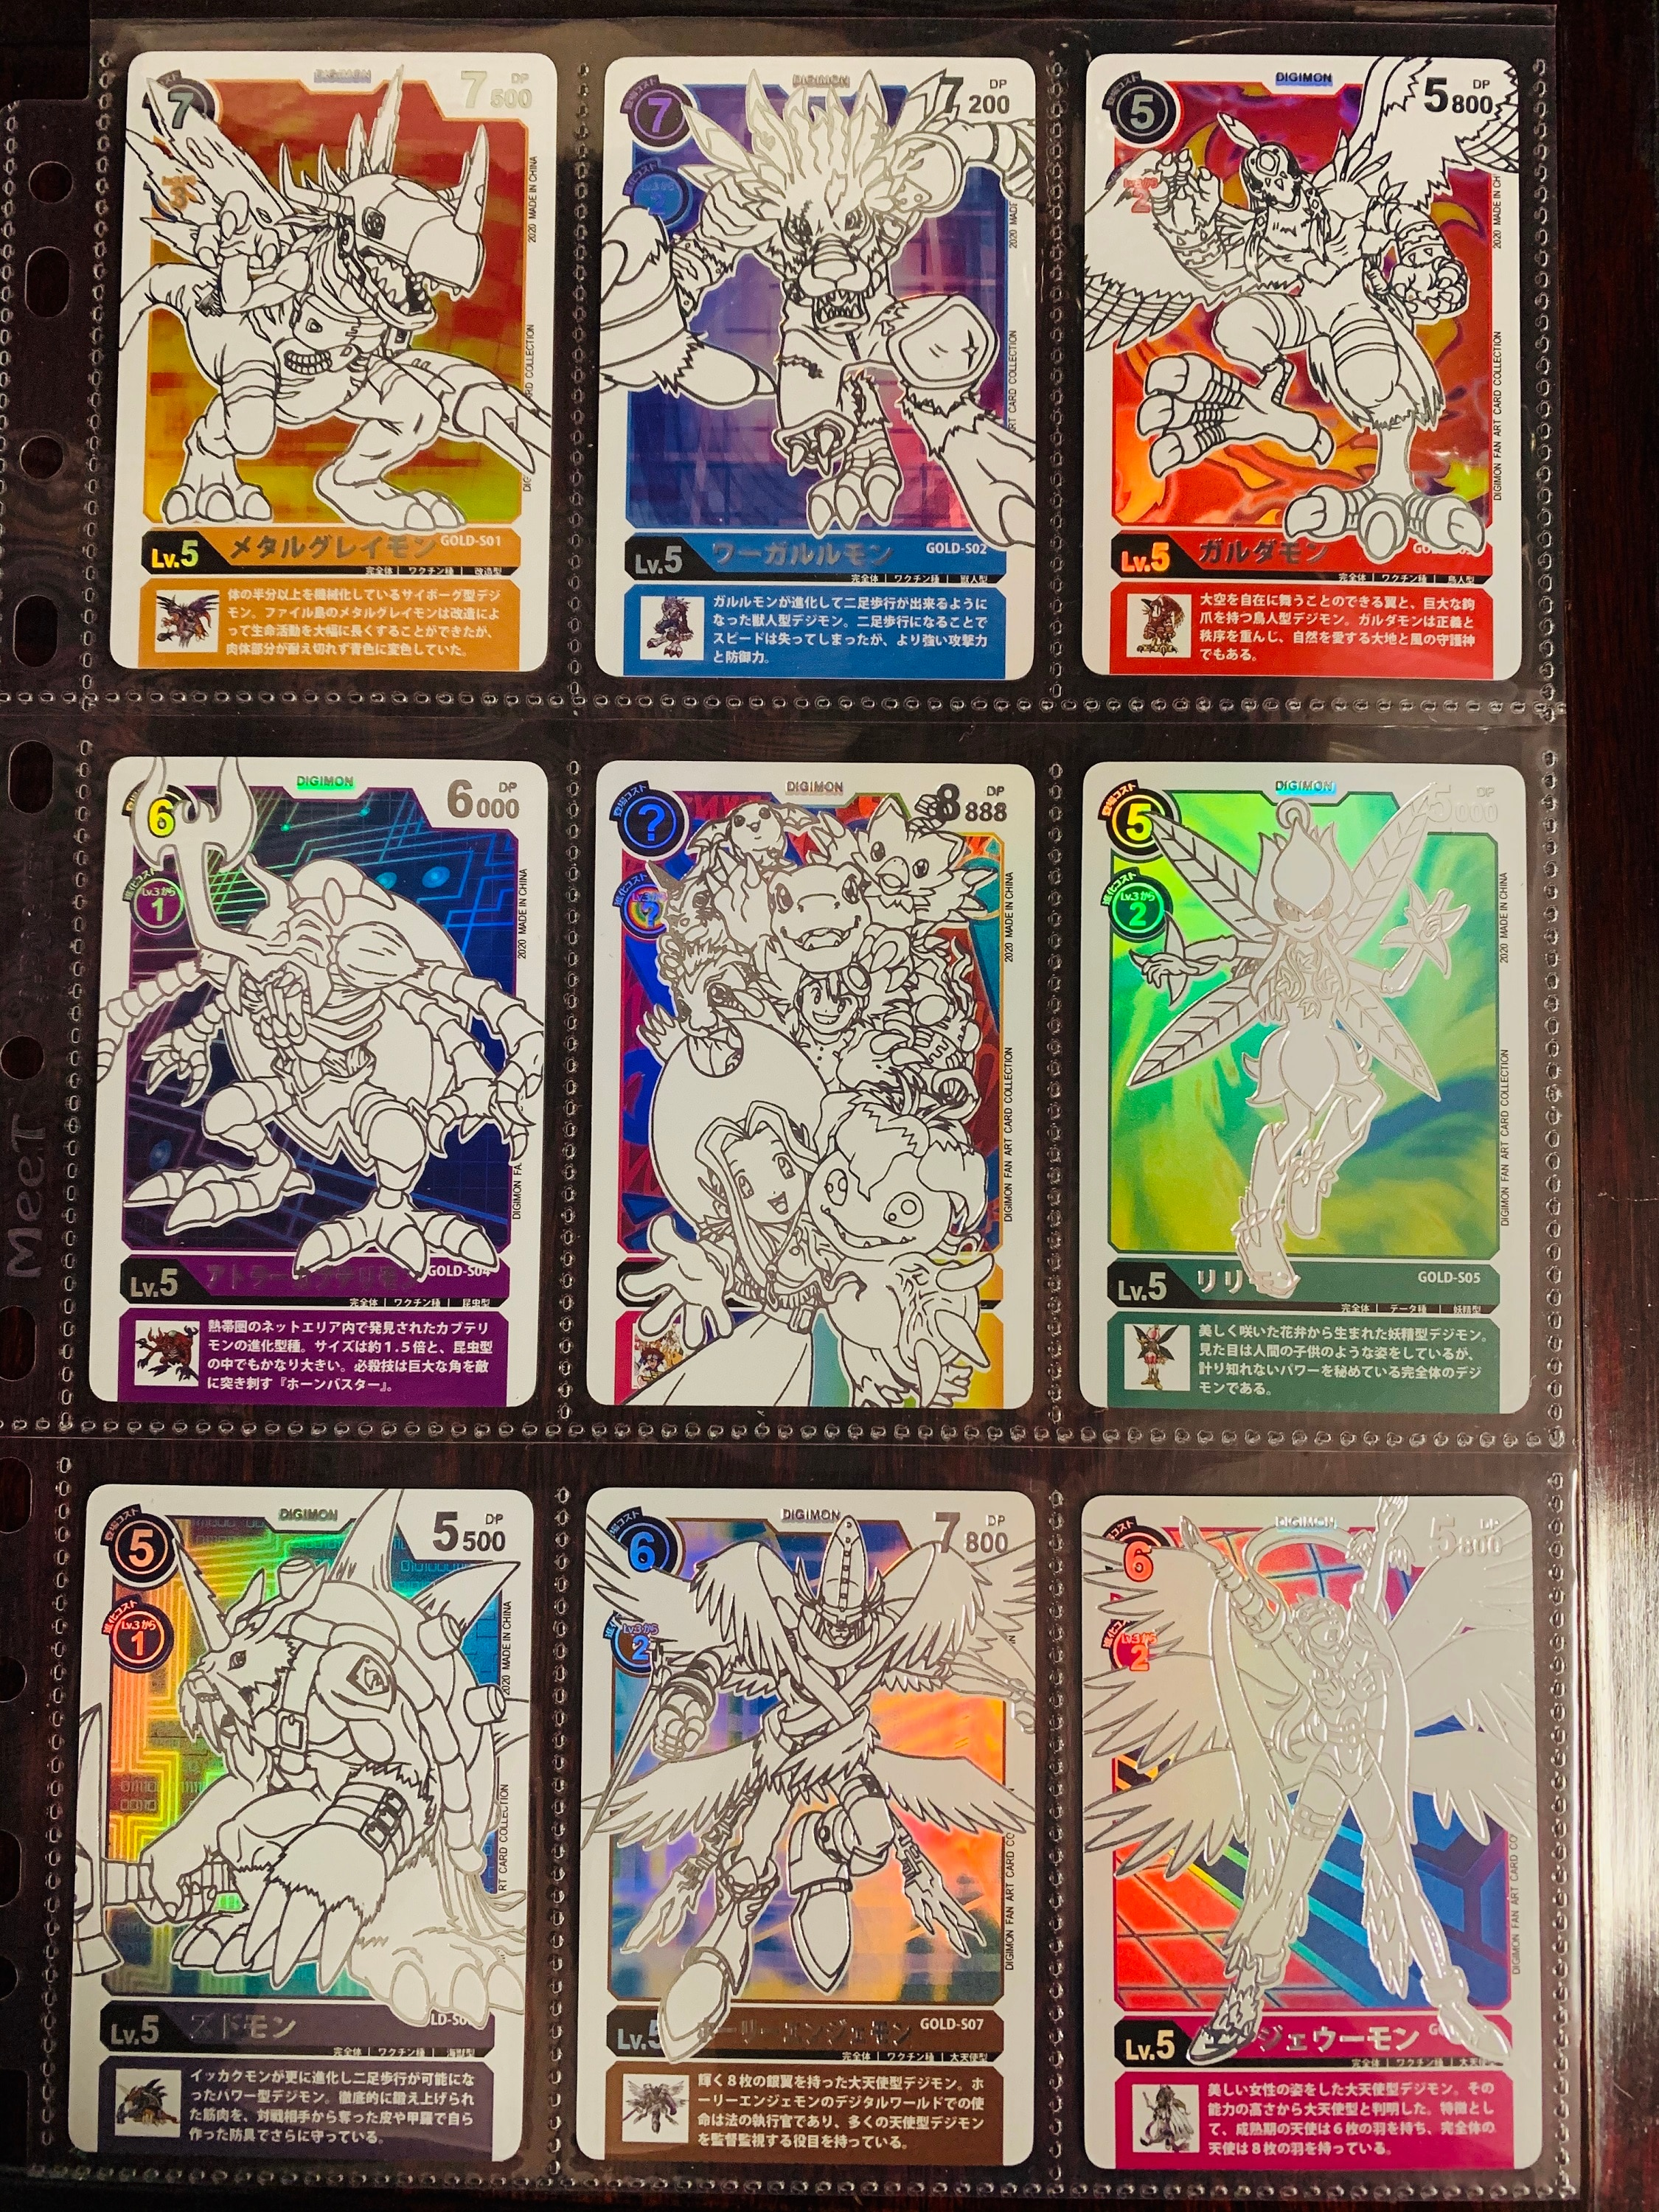 9pcs Digimon Digital Monster First Protagonist Group Is Complete Toys Hobbies Hobby Collectibles Game Collection Anime Cards